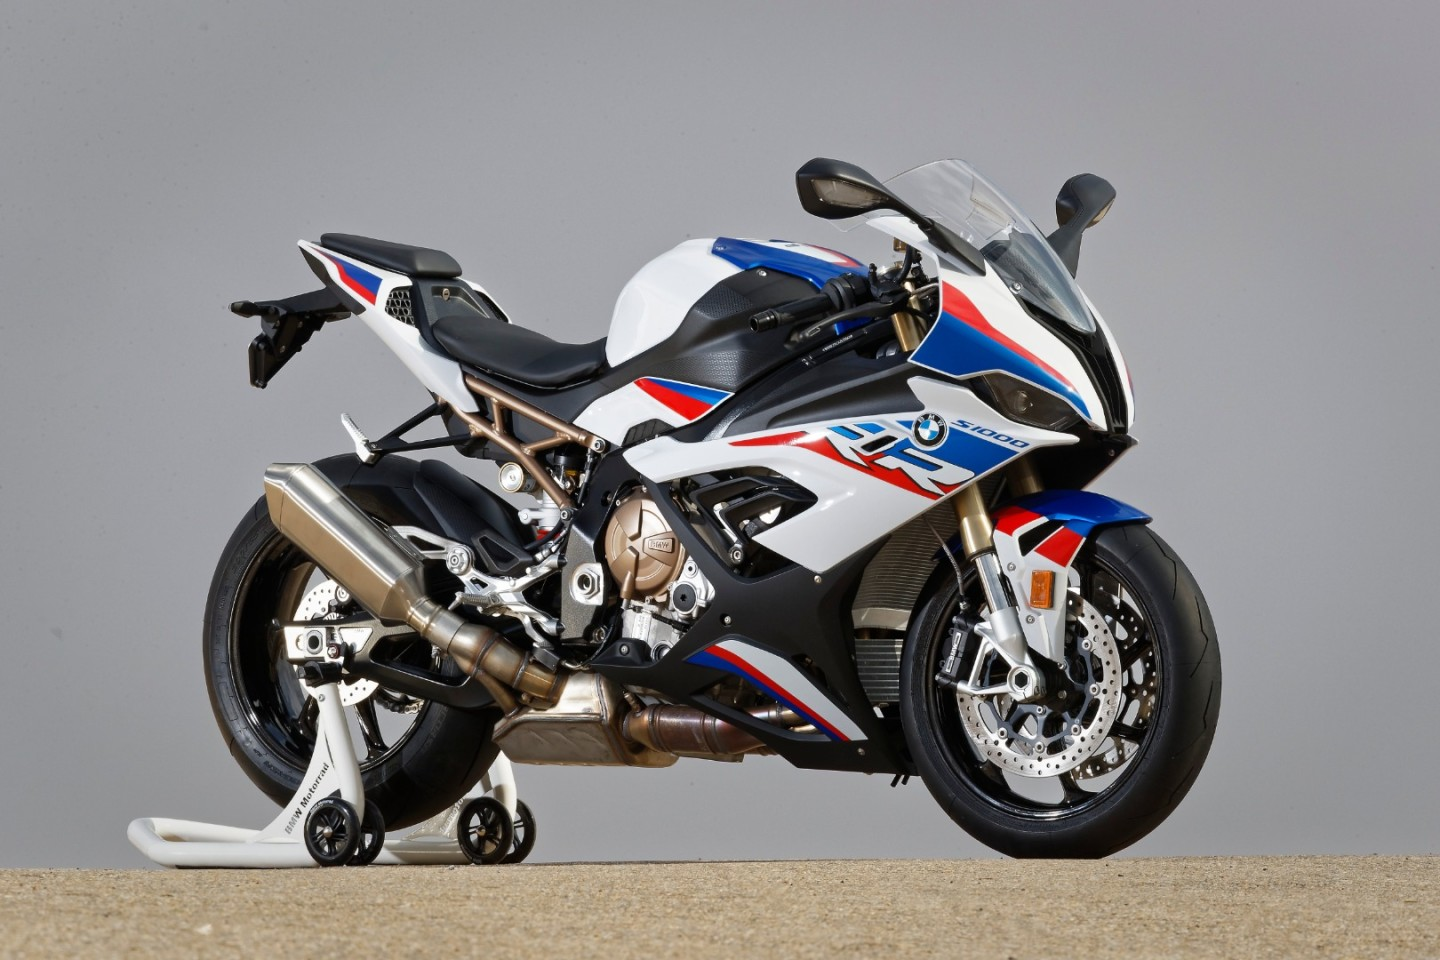 2019BMW S1000RR:new exhaust actually looks pretty good – it's also a fair bit lighter